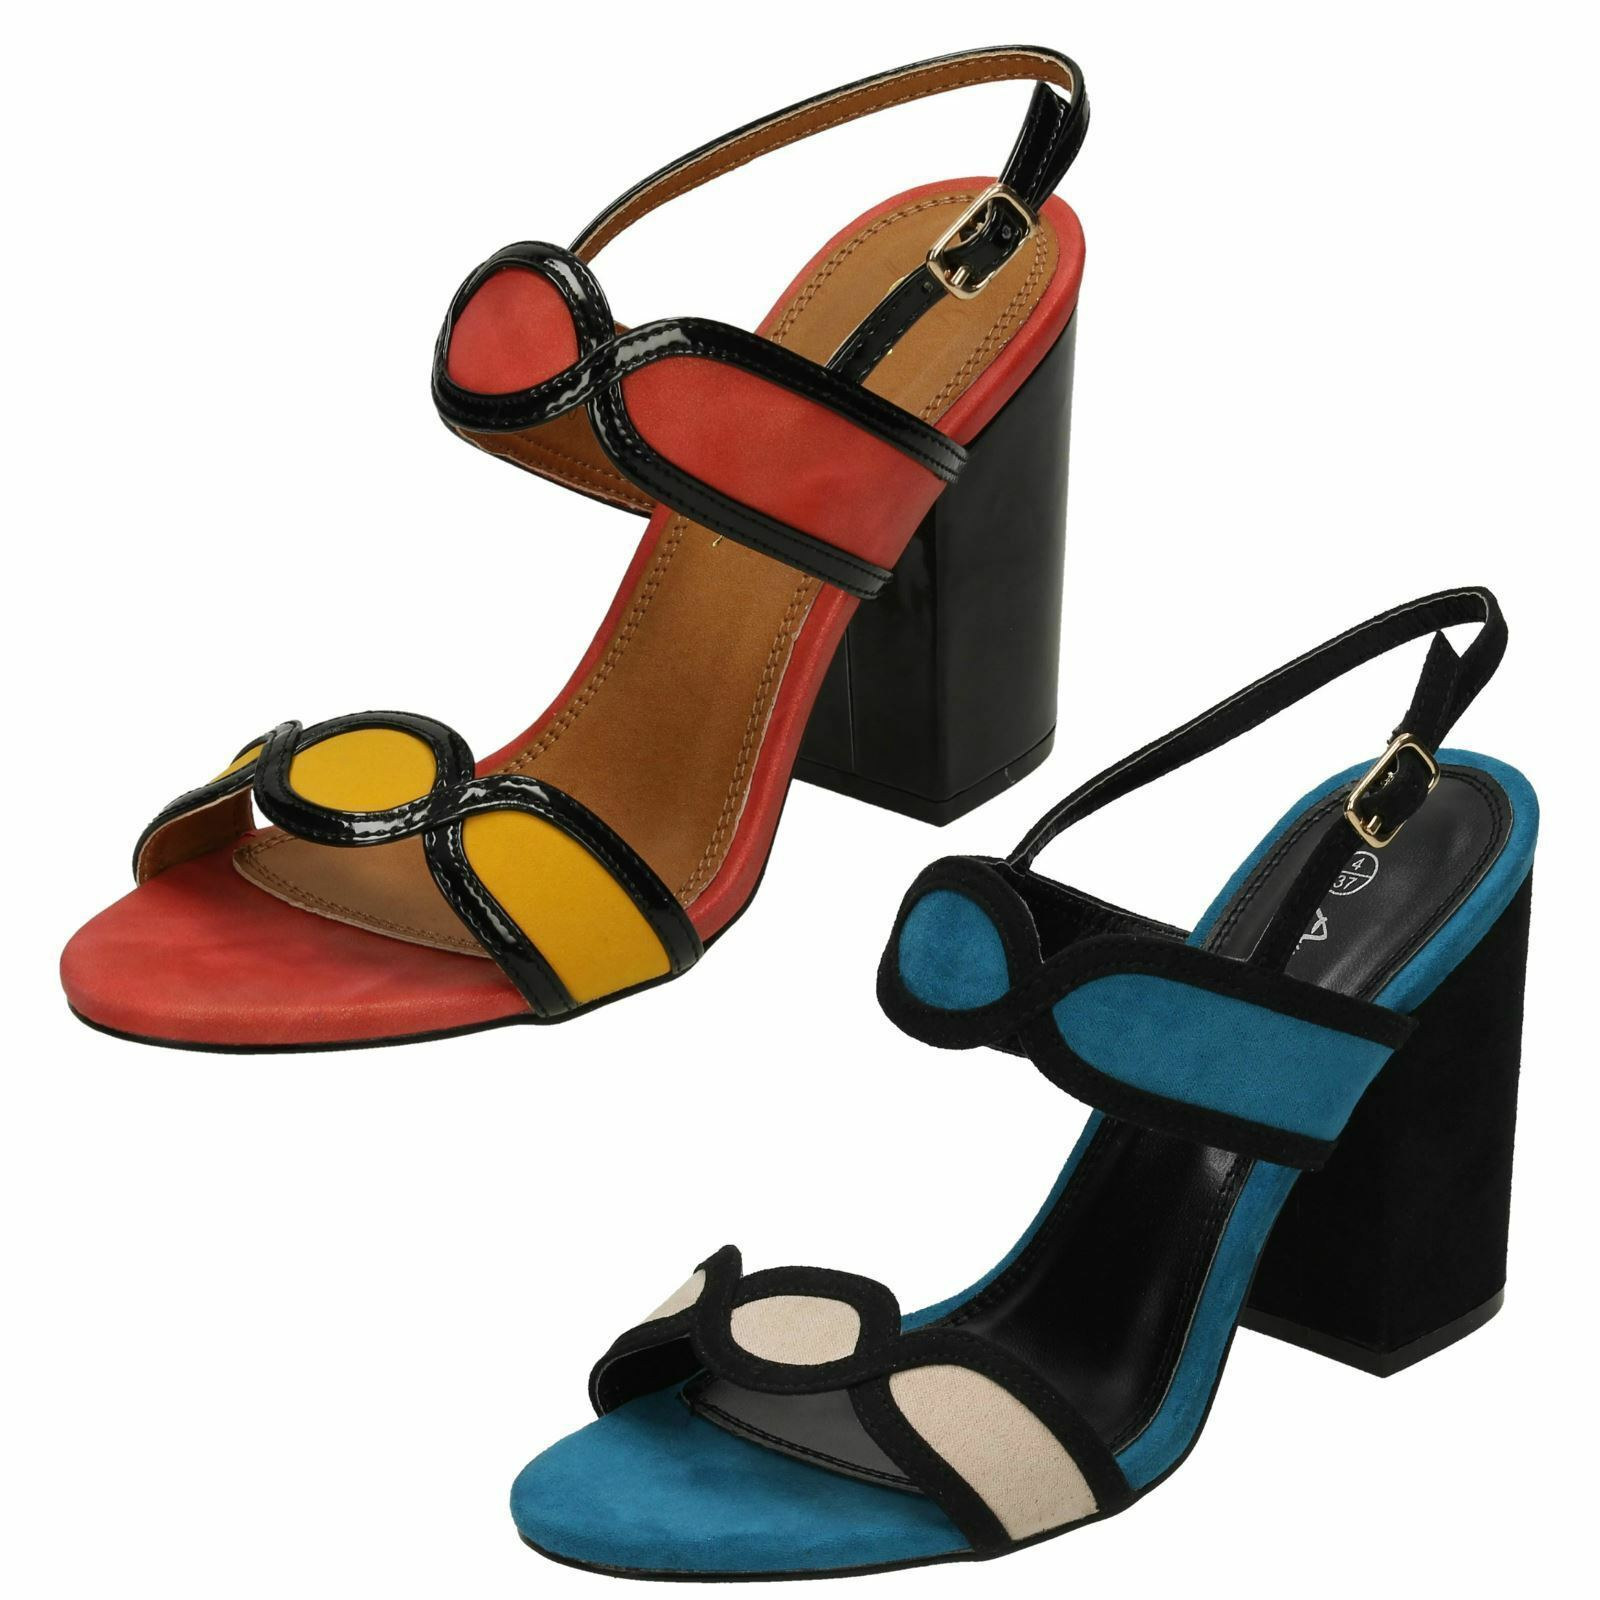 Ladies Anne Michelle High Chunky Heel Sandals F10646 £9.99